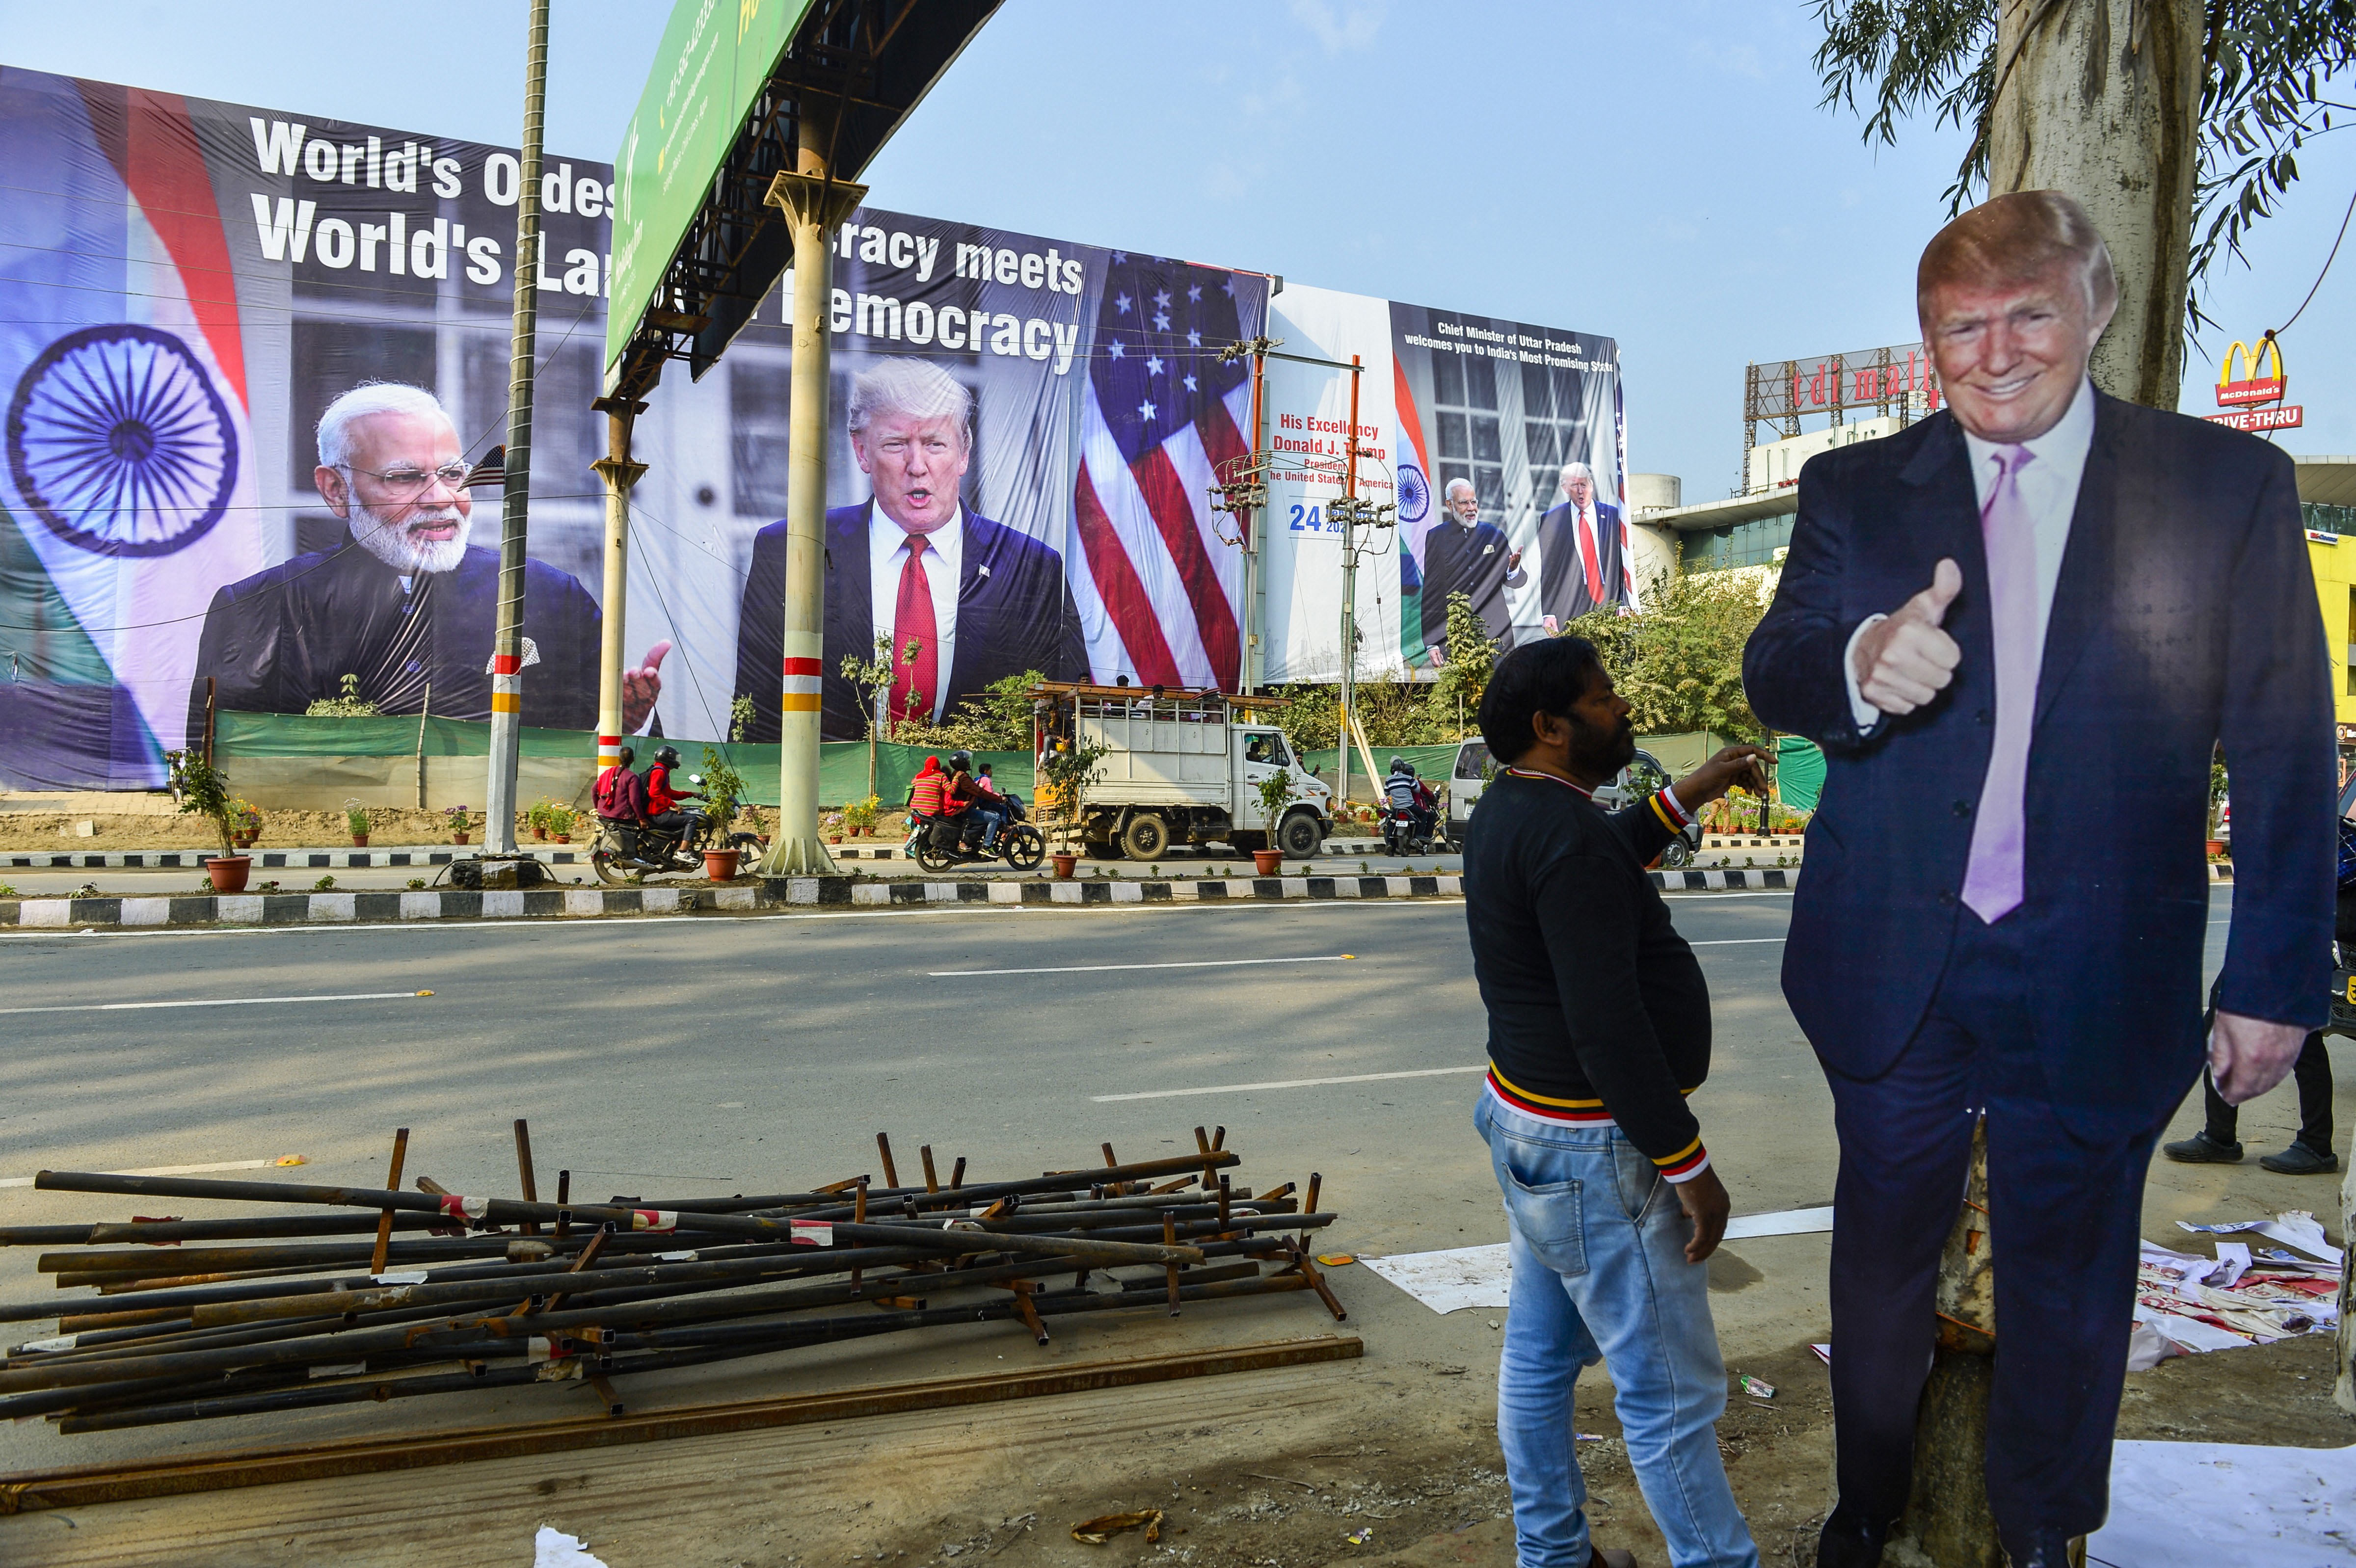 A worker arranges billboards of Donald Trump, near Taj Mahal ahead of the US President's maiden visit to India, in Agra, Sunday, February 23, 2020